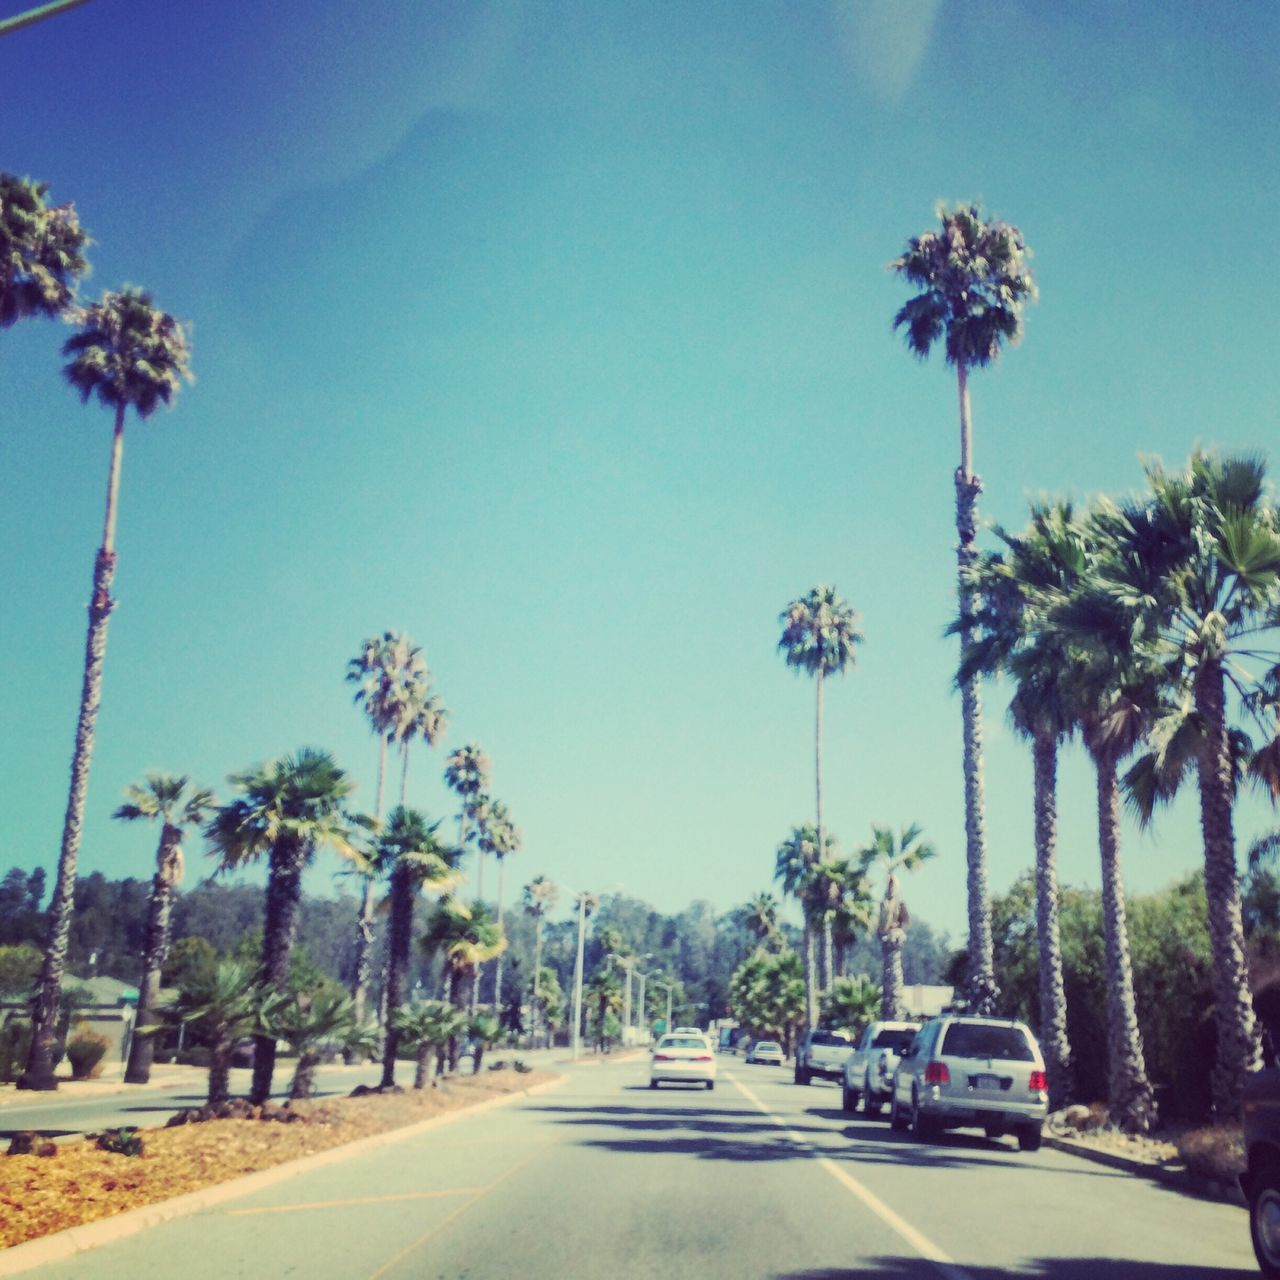 tree, car, road, palm tree, transportation, day, flower, growth, outdoors, land vehicle, sky, blue, beauty in nature, nature, no people, clear sky